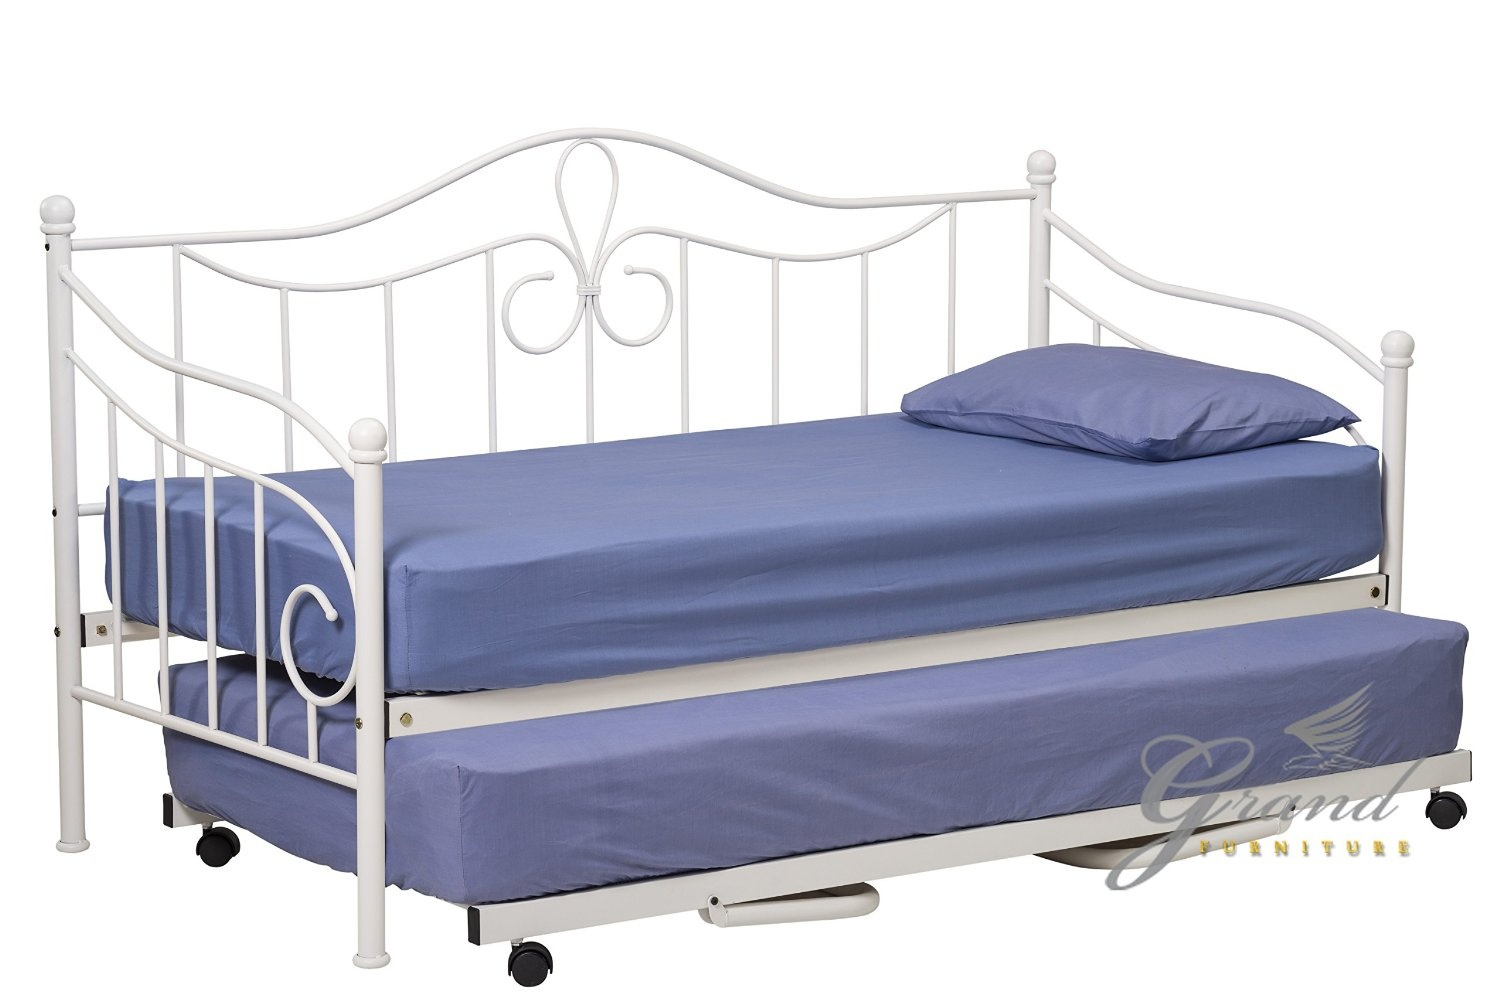 Lisbon Metal Day Bed With Trundle And Mattresses 2 White Victorian Style 0 9m Single Guest Sofa Bed Frame Bedstead By Metal Day Beds Shop Online For Homeware In New Zealand